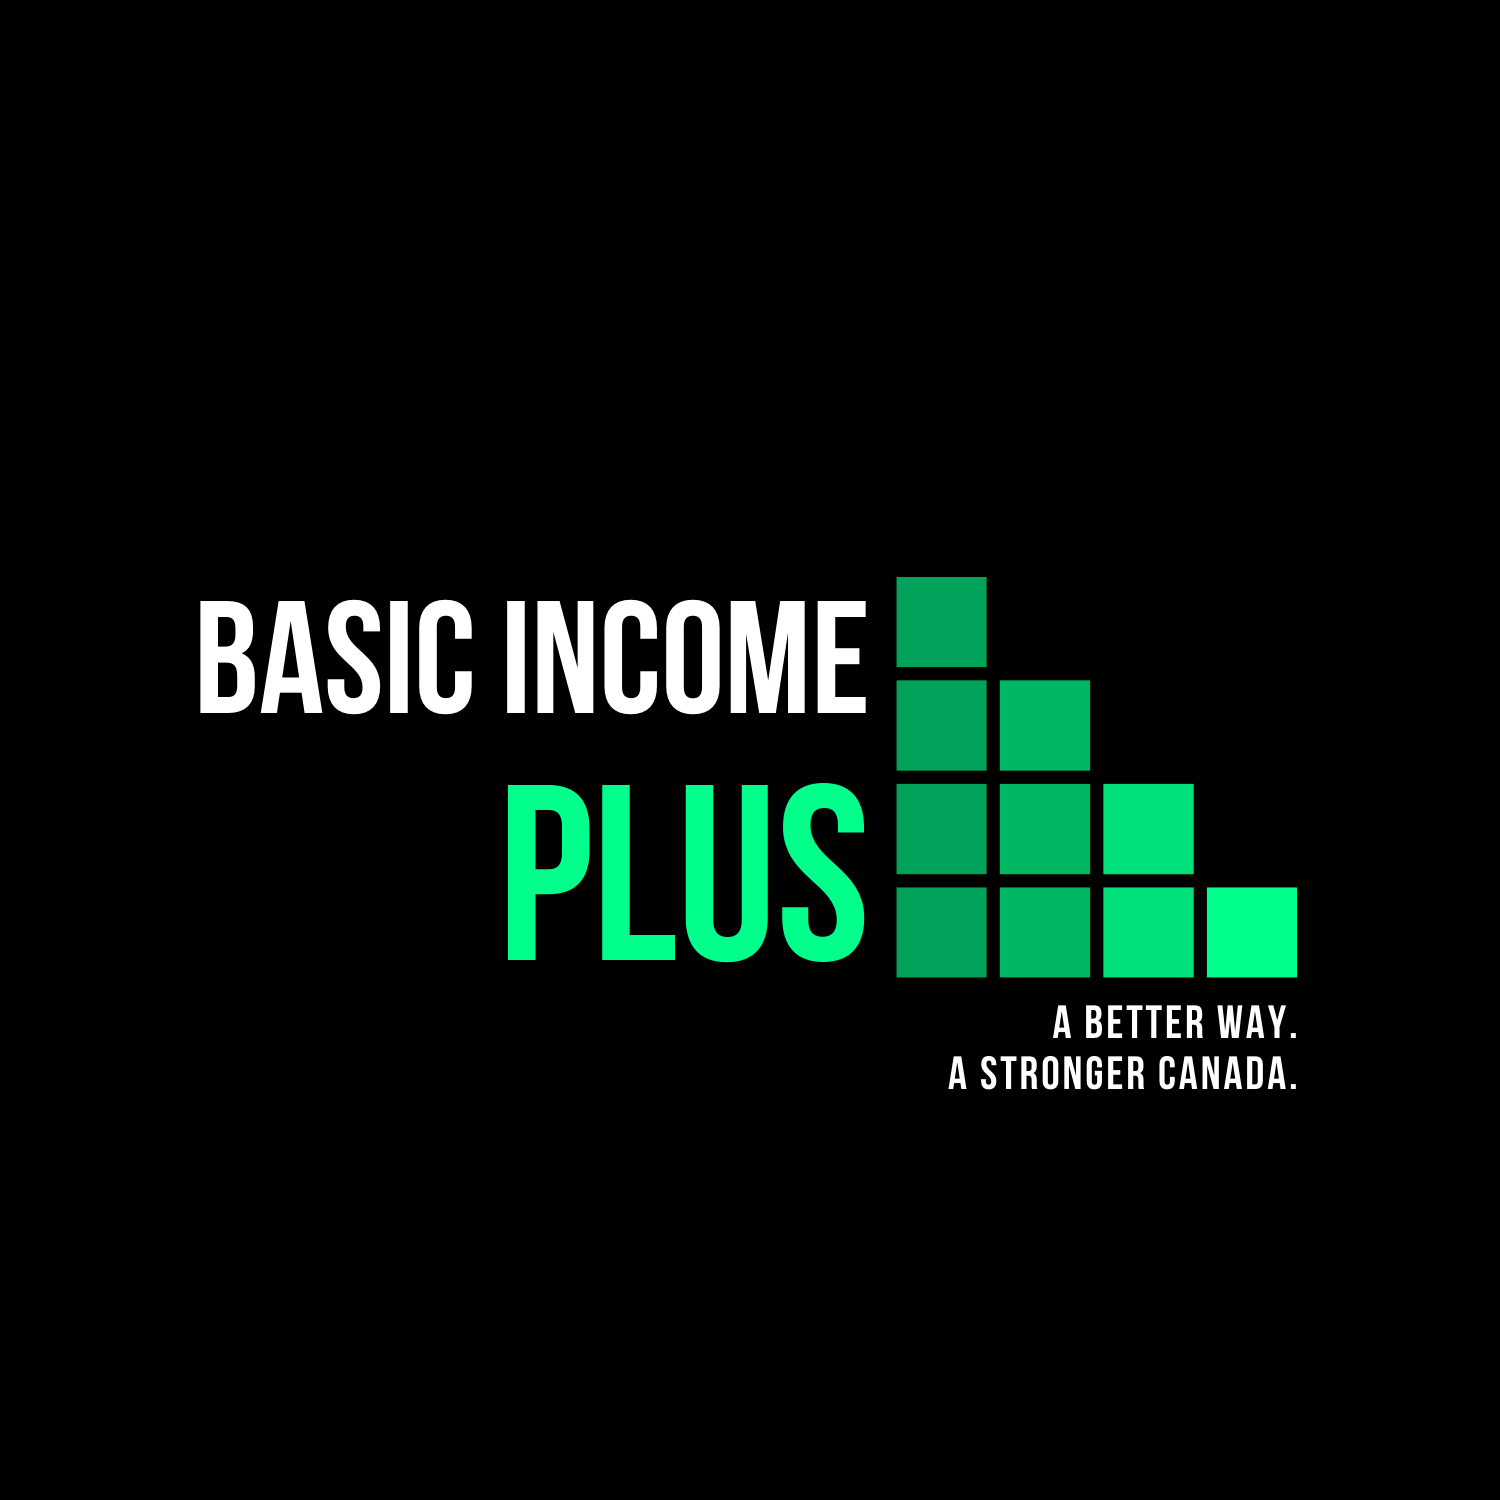 basic income plus logo